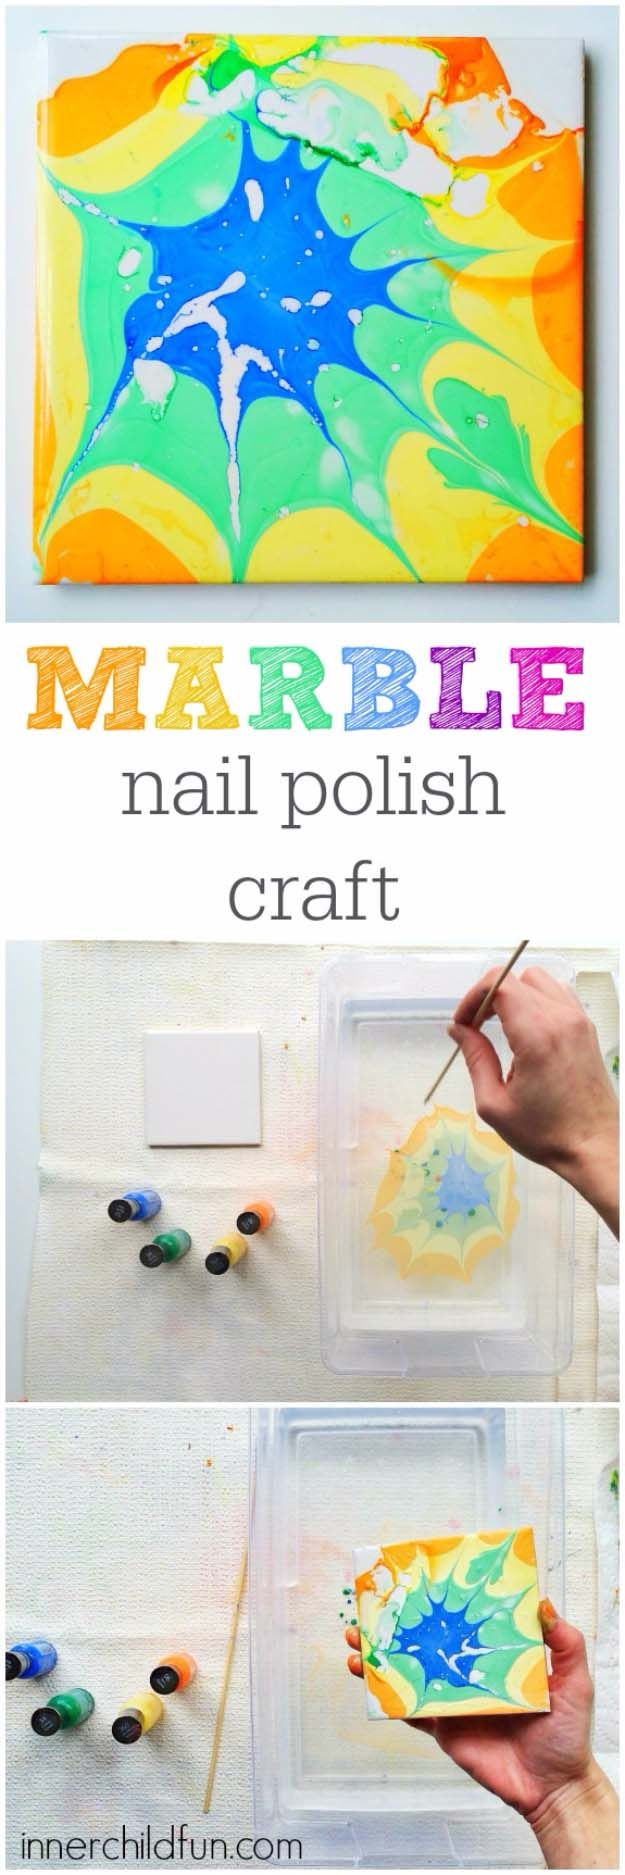 Art Ed Central likes: DIY Crafts Using Nail Polish - Fun, Cool, Easy and Cheap Craft Ideas